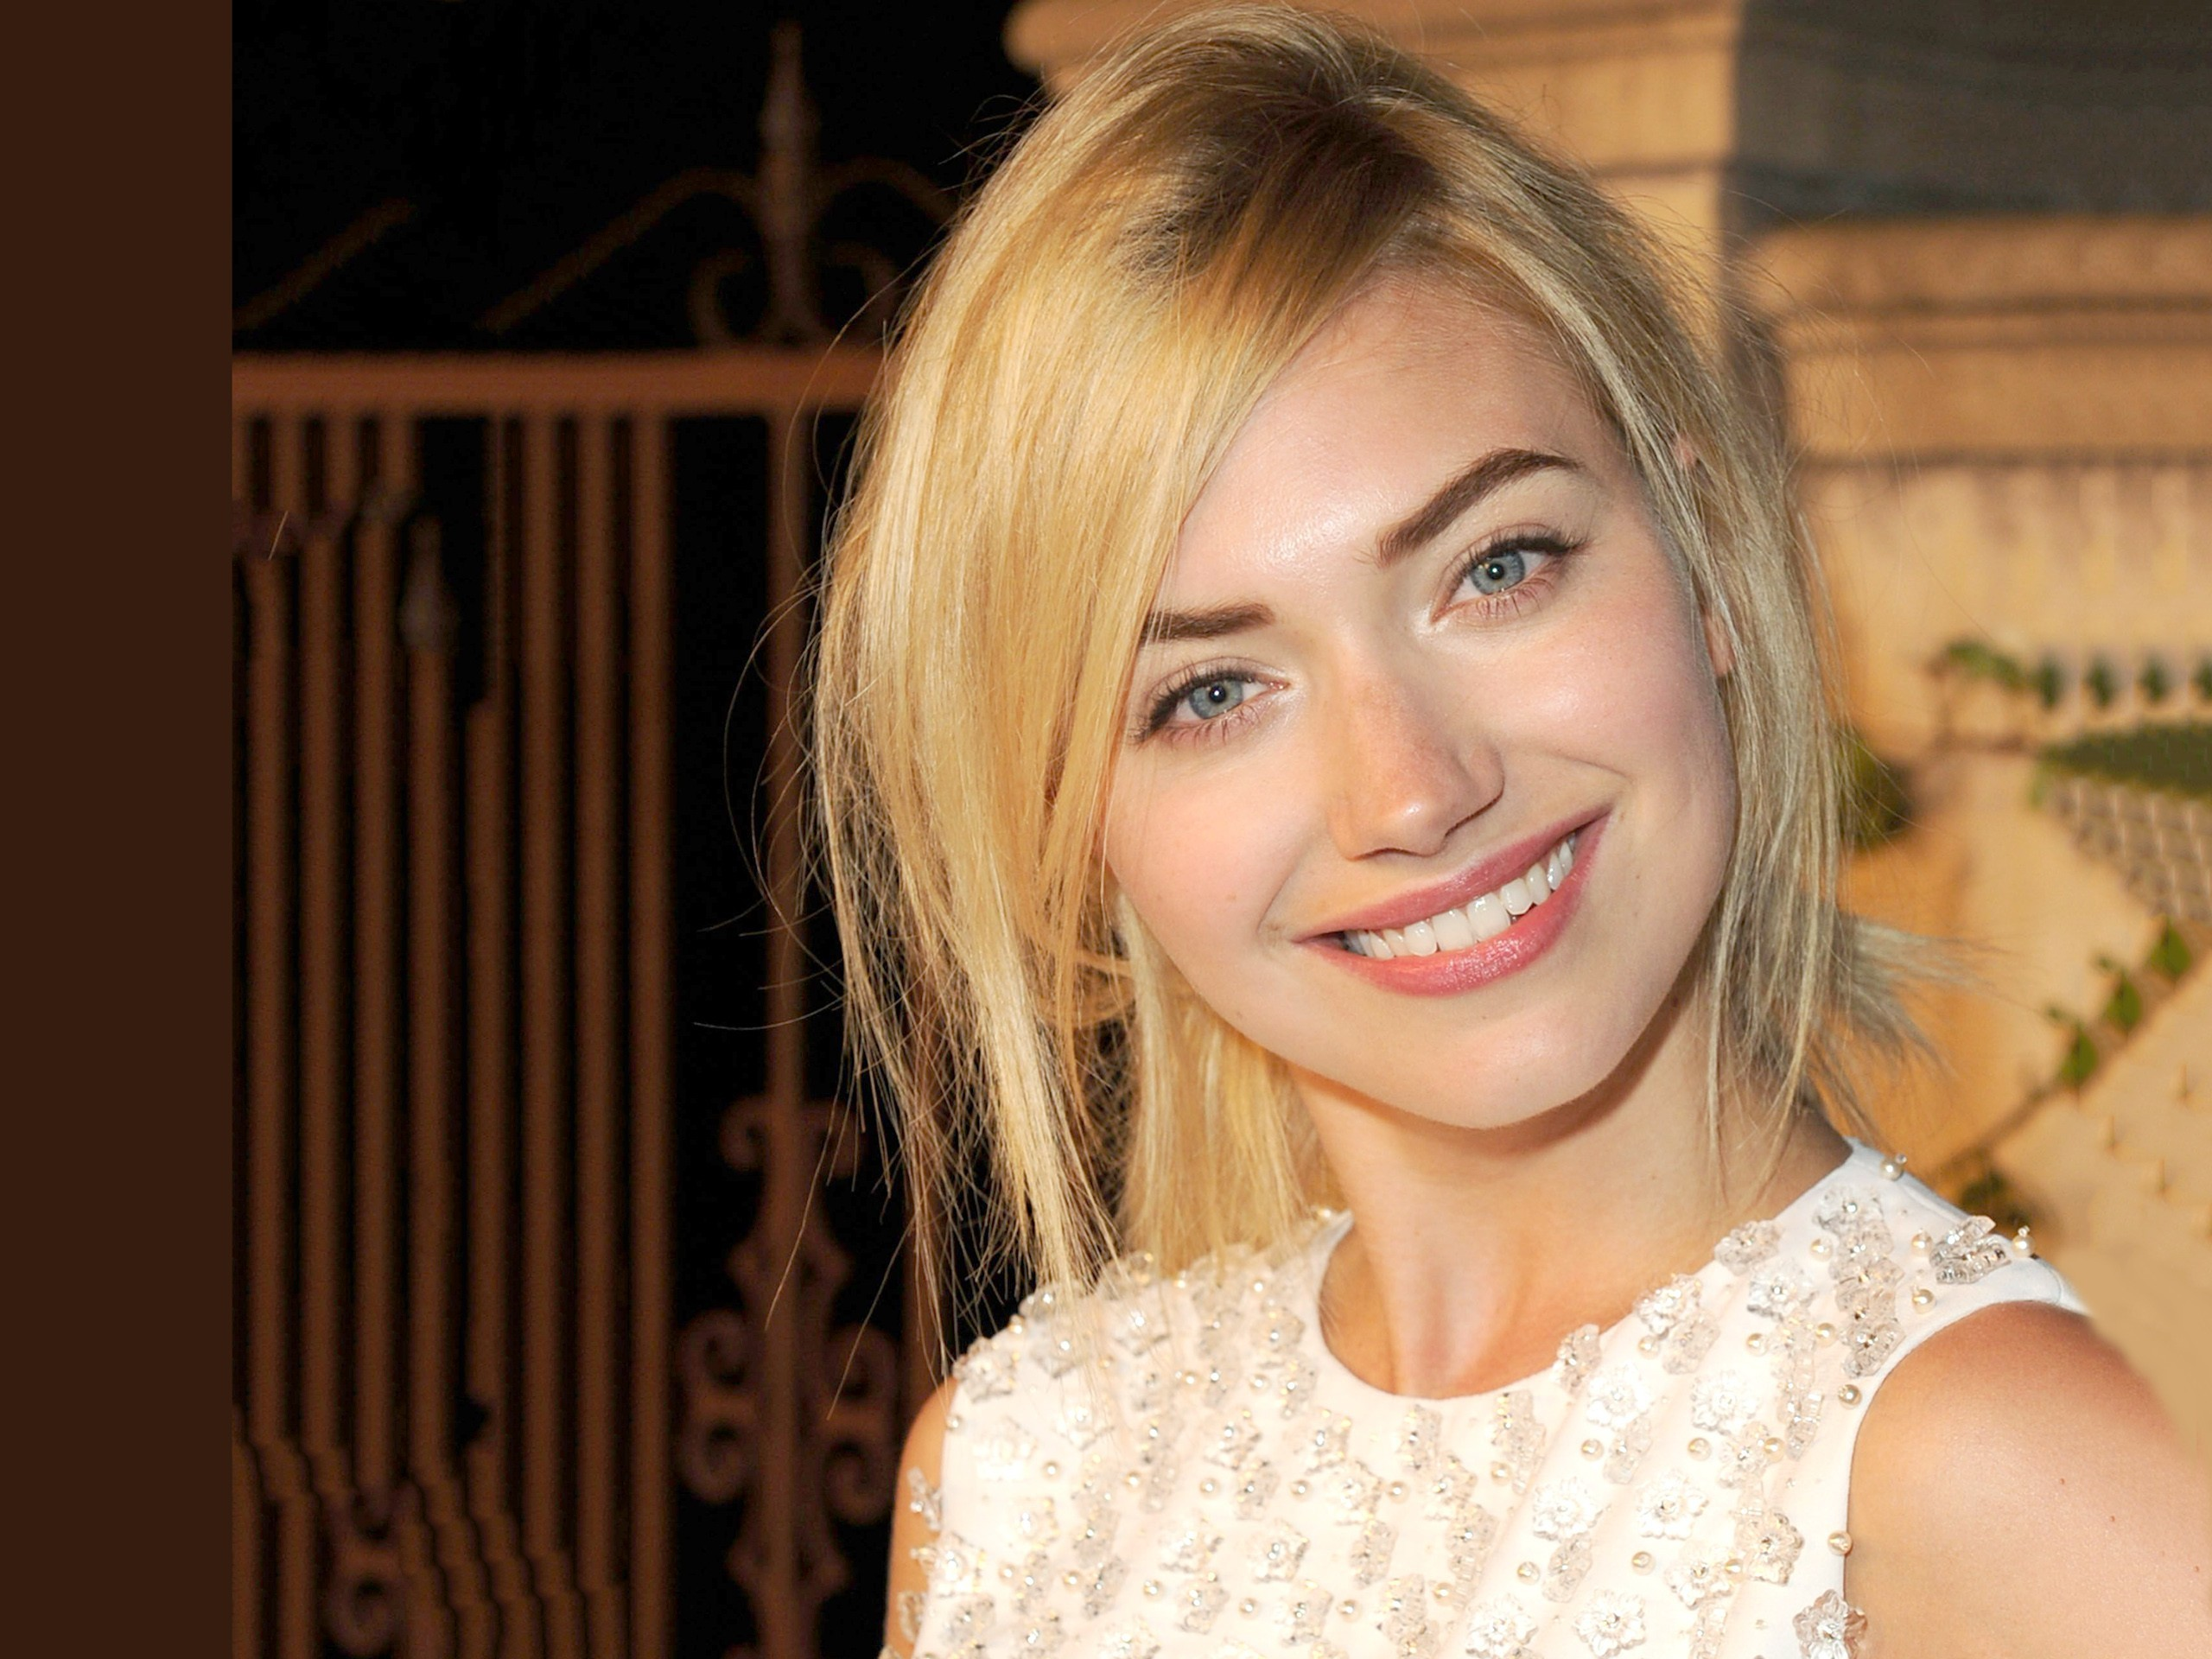 2560x1920 Imogen Poots blondes close-up faces smiling wallpaper  http://downtimechecker.com